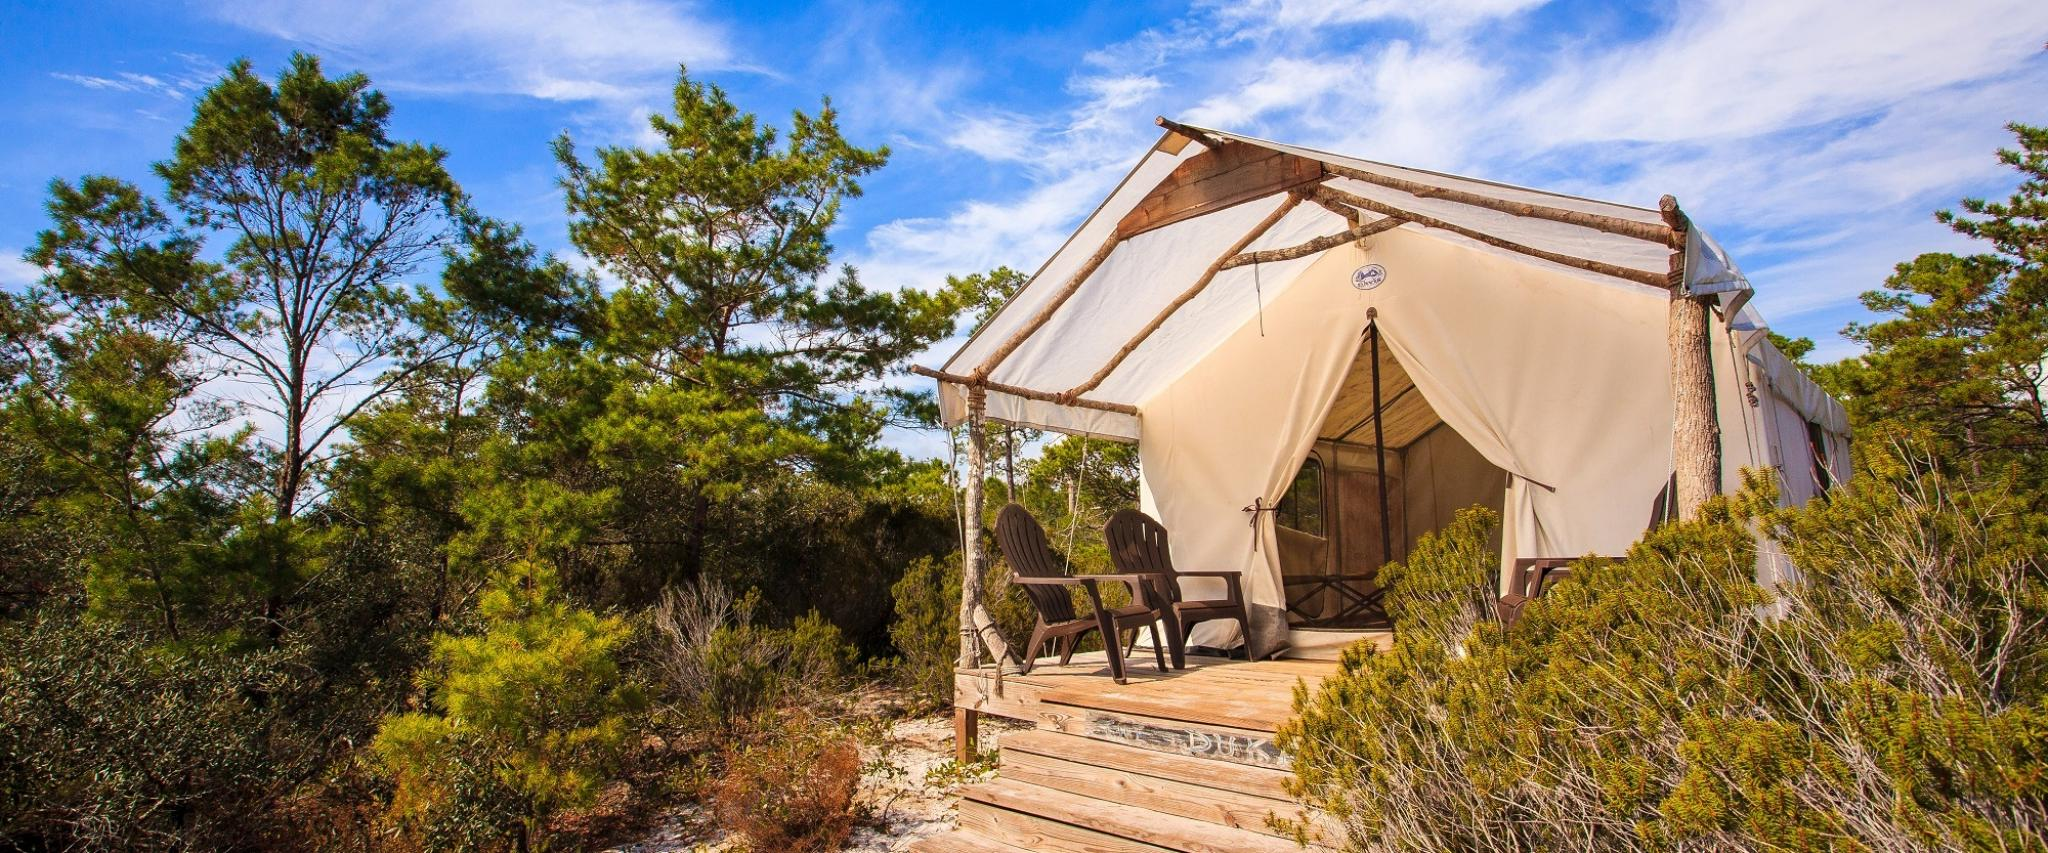 Top 10 Rv Parks Campgrounds In Gulf Shores Orange Beach